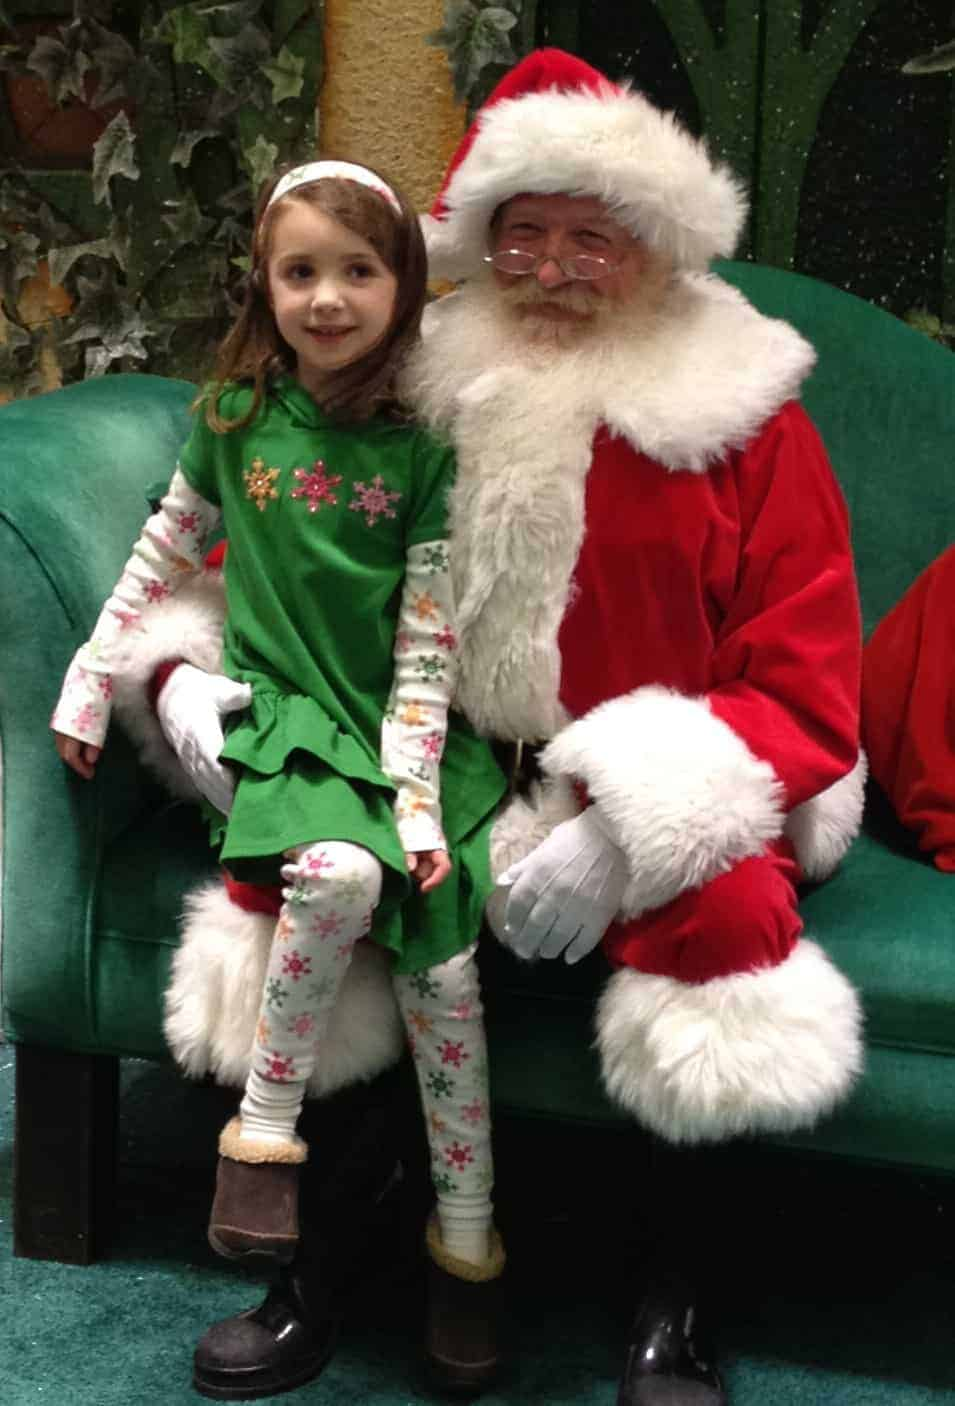 Nov 06,  · Santa Claus is coming to Ann Arbor's Briarwood Mall starting Saturday, Nov. 18, with special events planned for the entire family and furry companions.